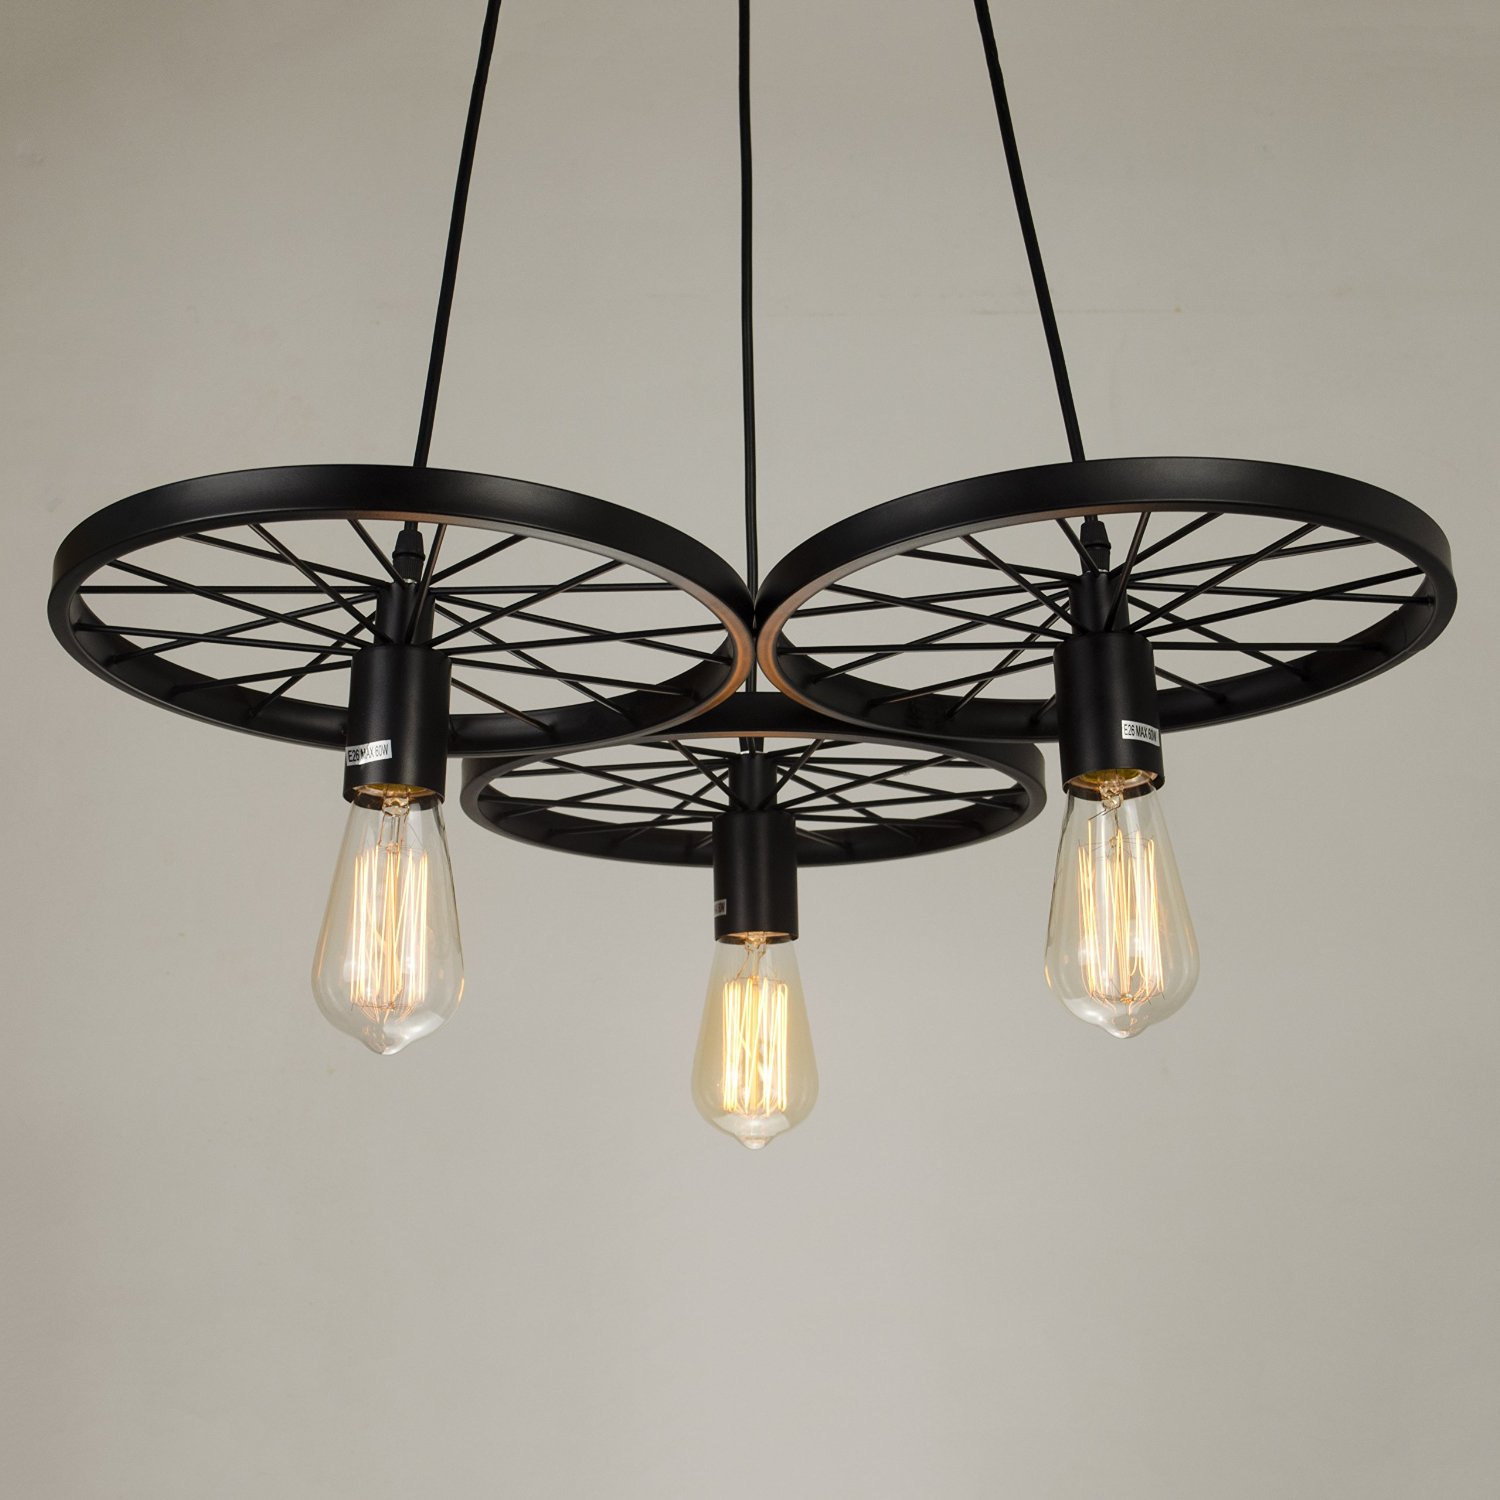 Industrial style pendant light 3 edison bulbs chandelier lighting kitchen pendan chandeliers - Industrial lighting fixtures for kitchen ...